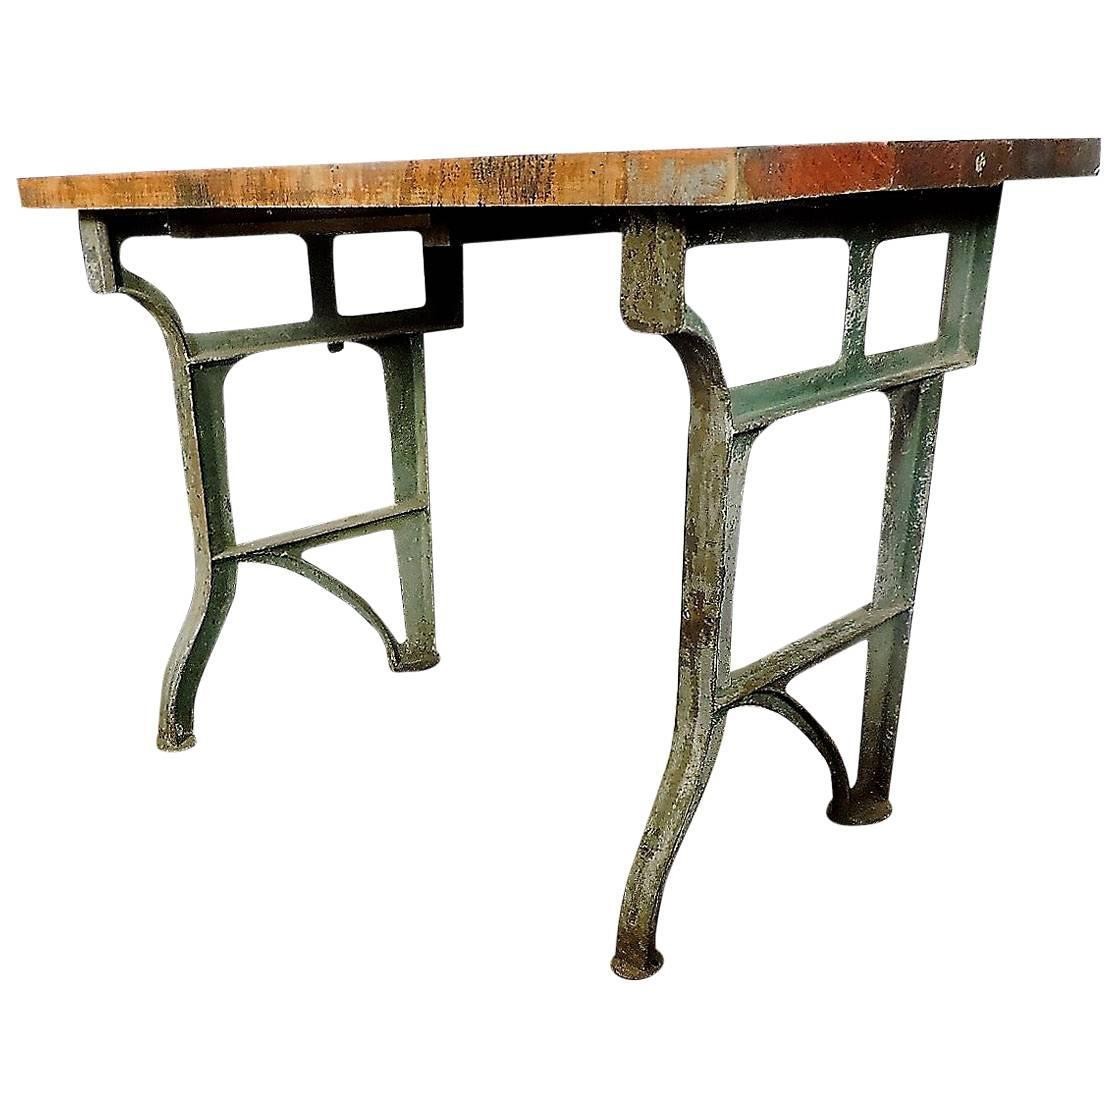 Antique kitchen work table - Antique Kitchen Work Table 30